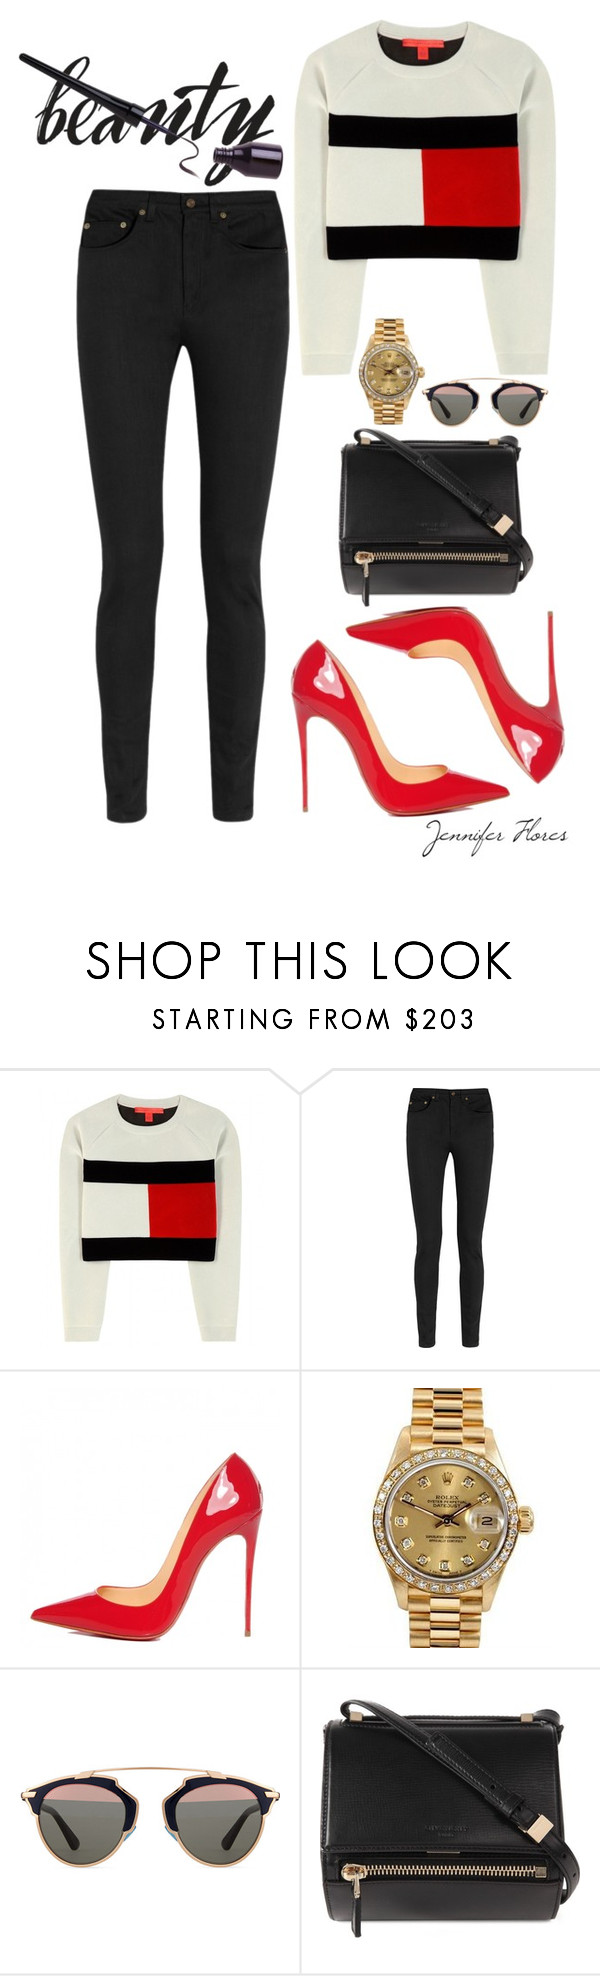 """""""beauty."""" by jenniferfls on Polyvore featuring moda, Tommy Hilfiger, Yves Saint Laurent, Christian Louboutin, Rolex, Christian Dior y Givenchy"""